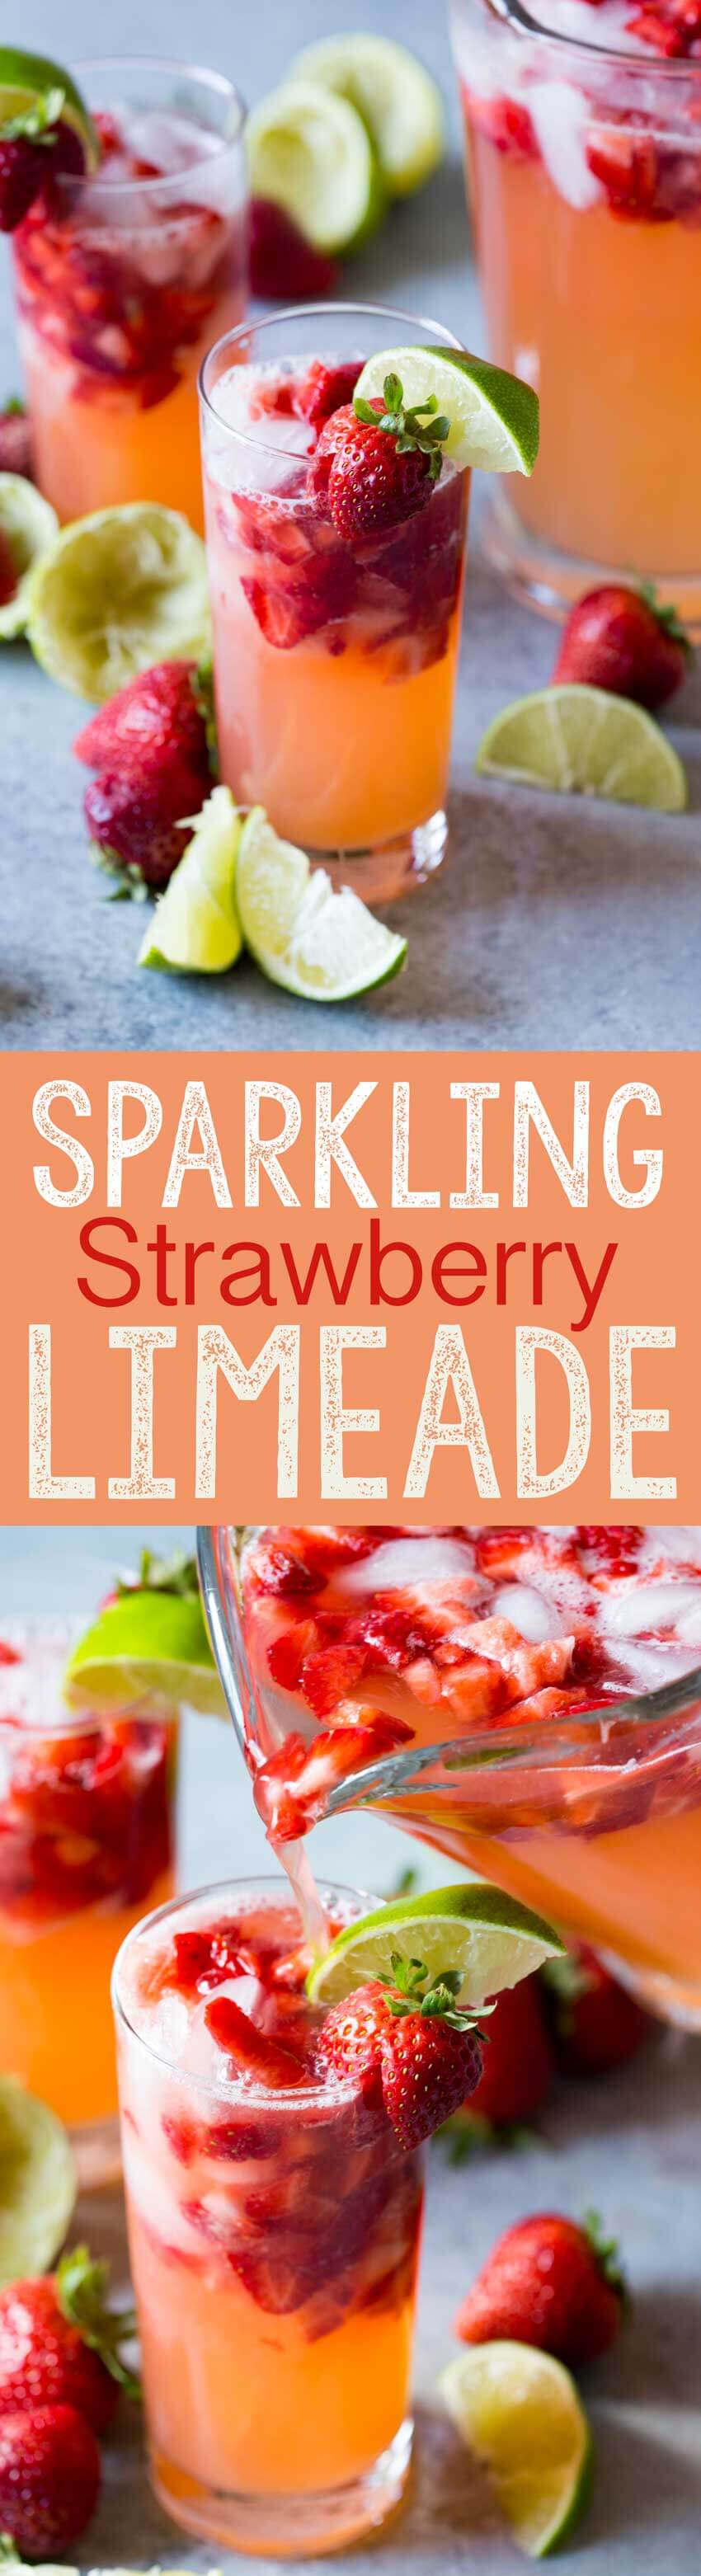 Sparkling strawberry limeade is light, refreshing, and delicious.